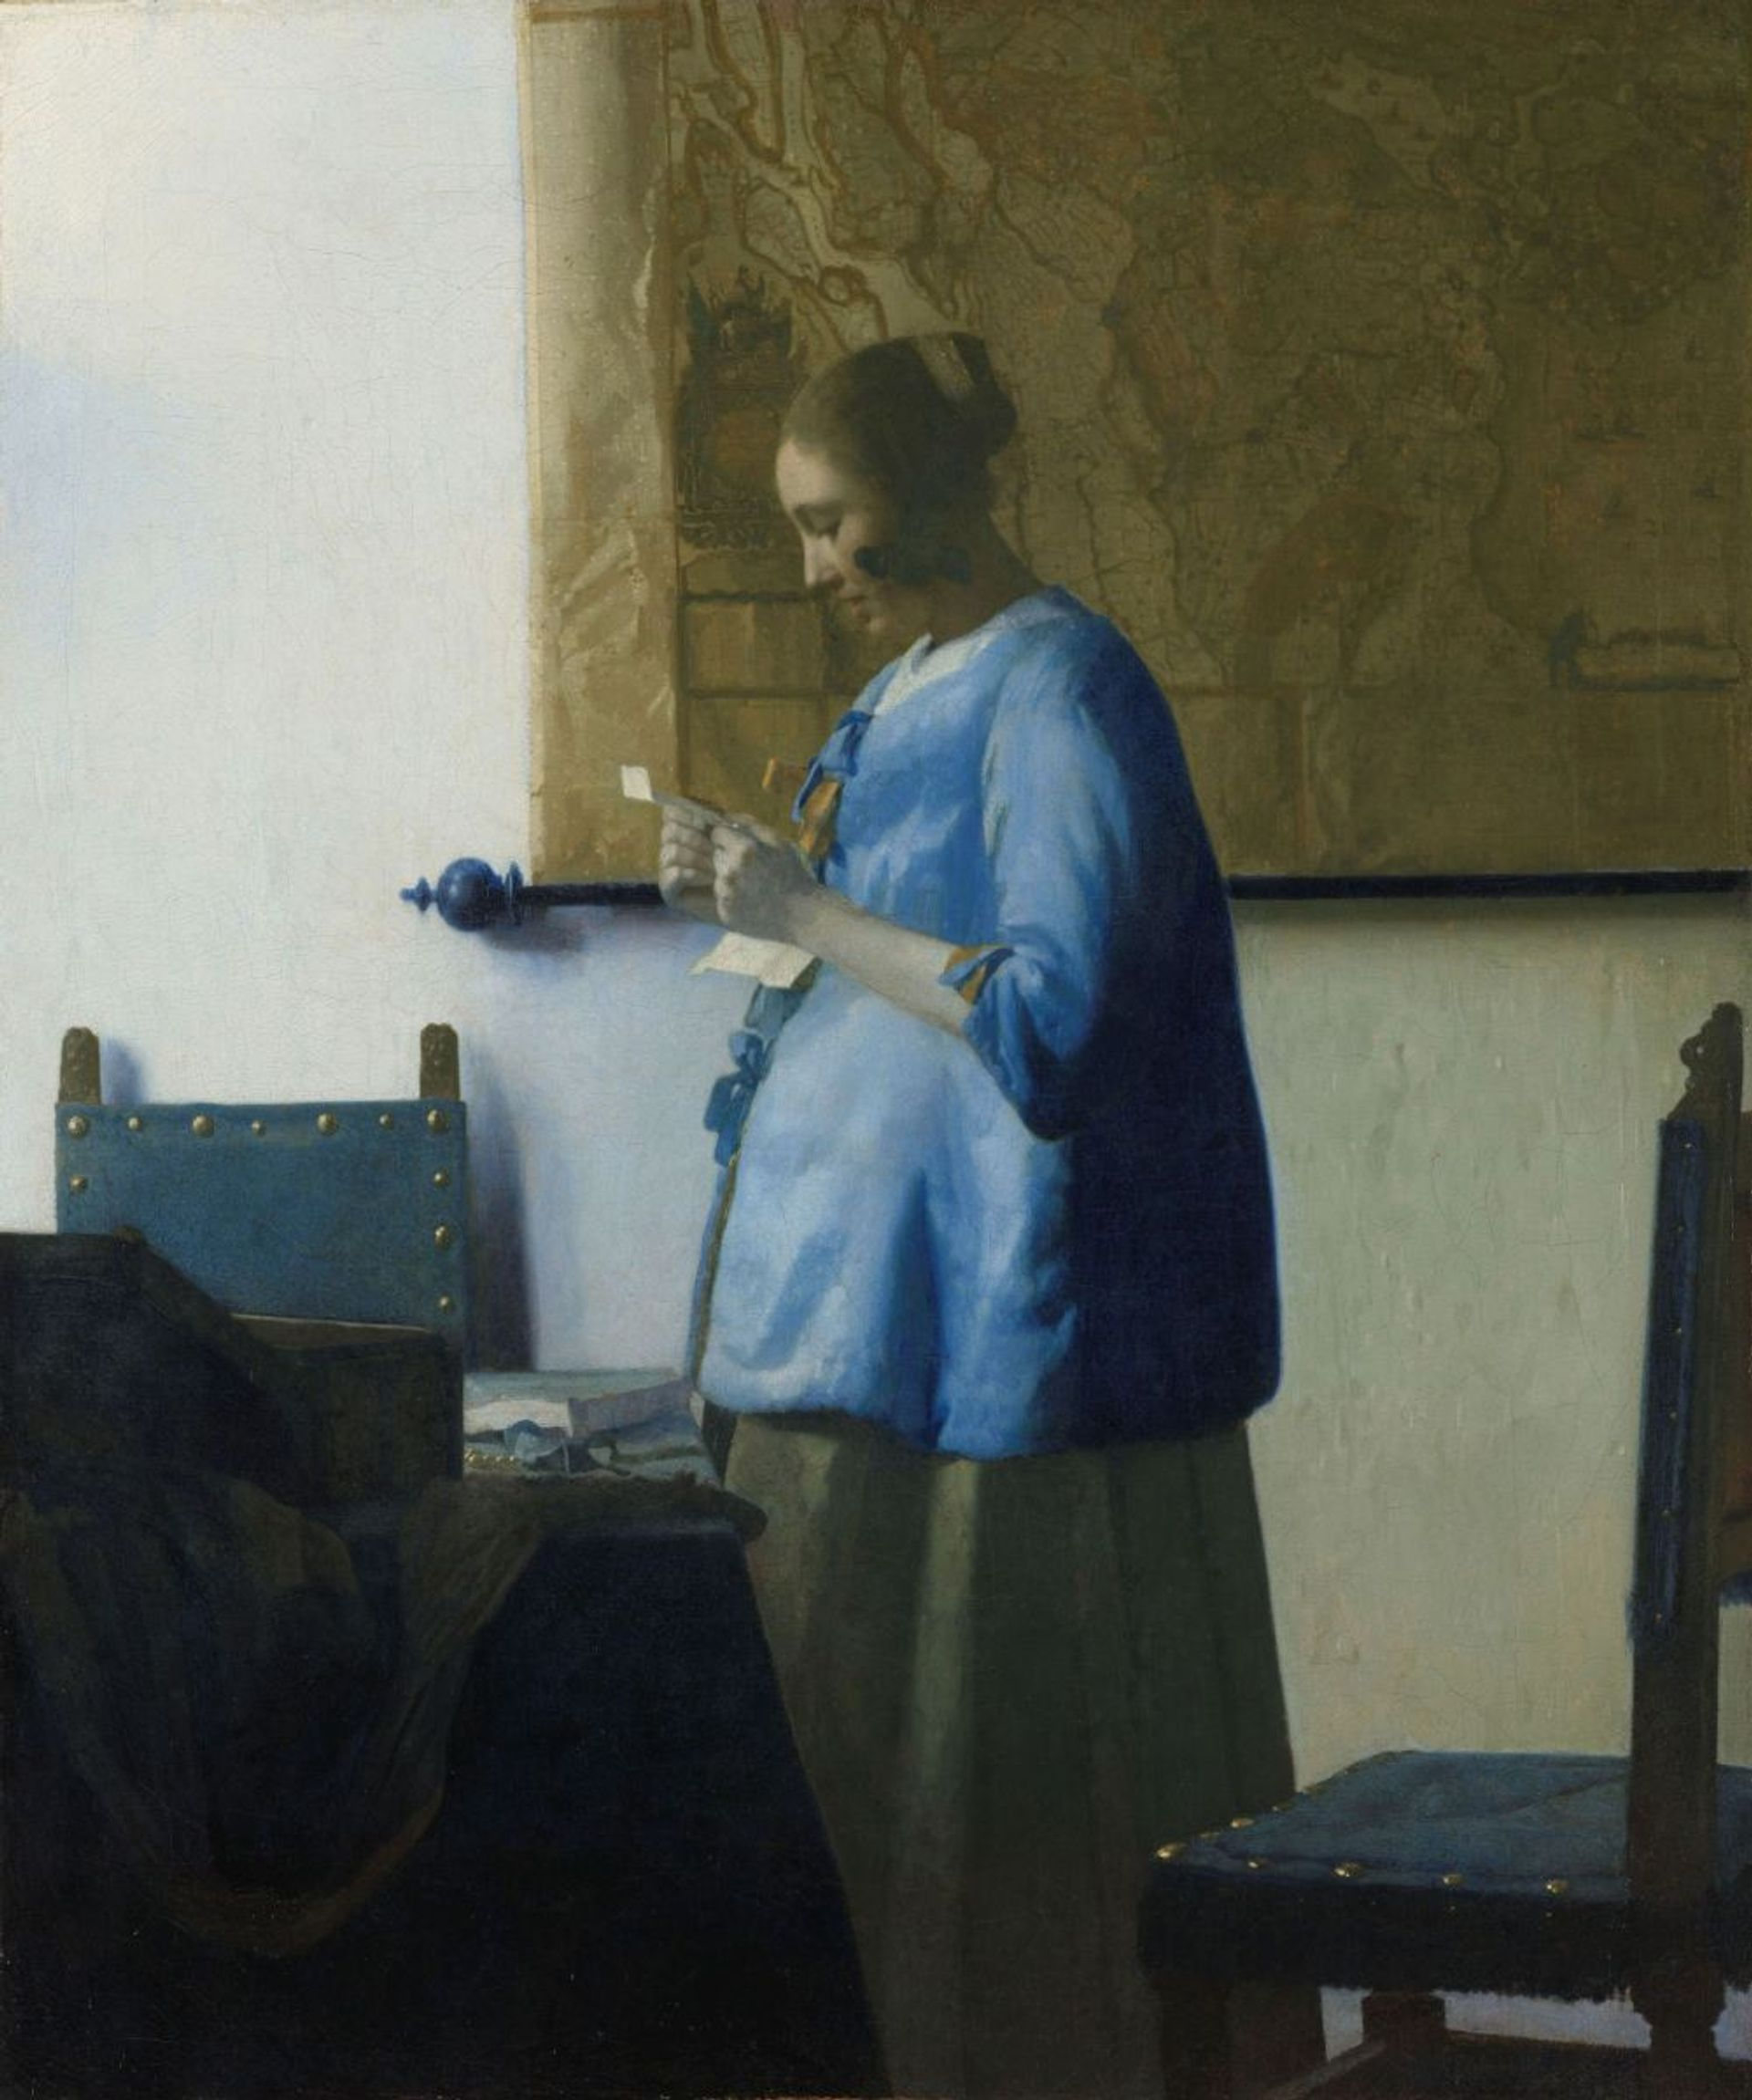 Vermeer's Woman in Blue Reading a Letter (around 1663) will be on loan from the Rijksmuseum for the exhibition at Dresden's Semperbau © Rijksmuseum